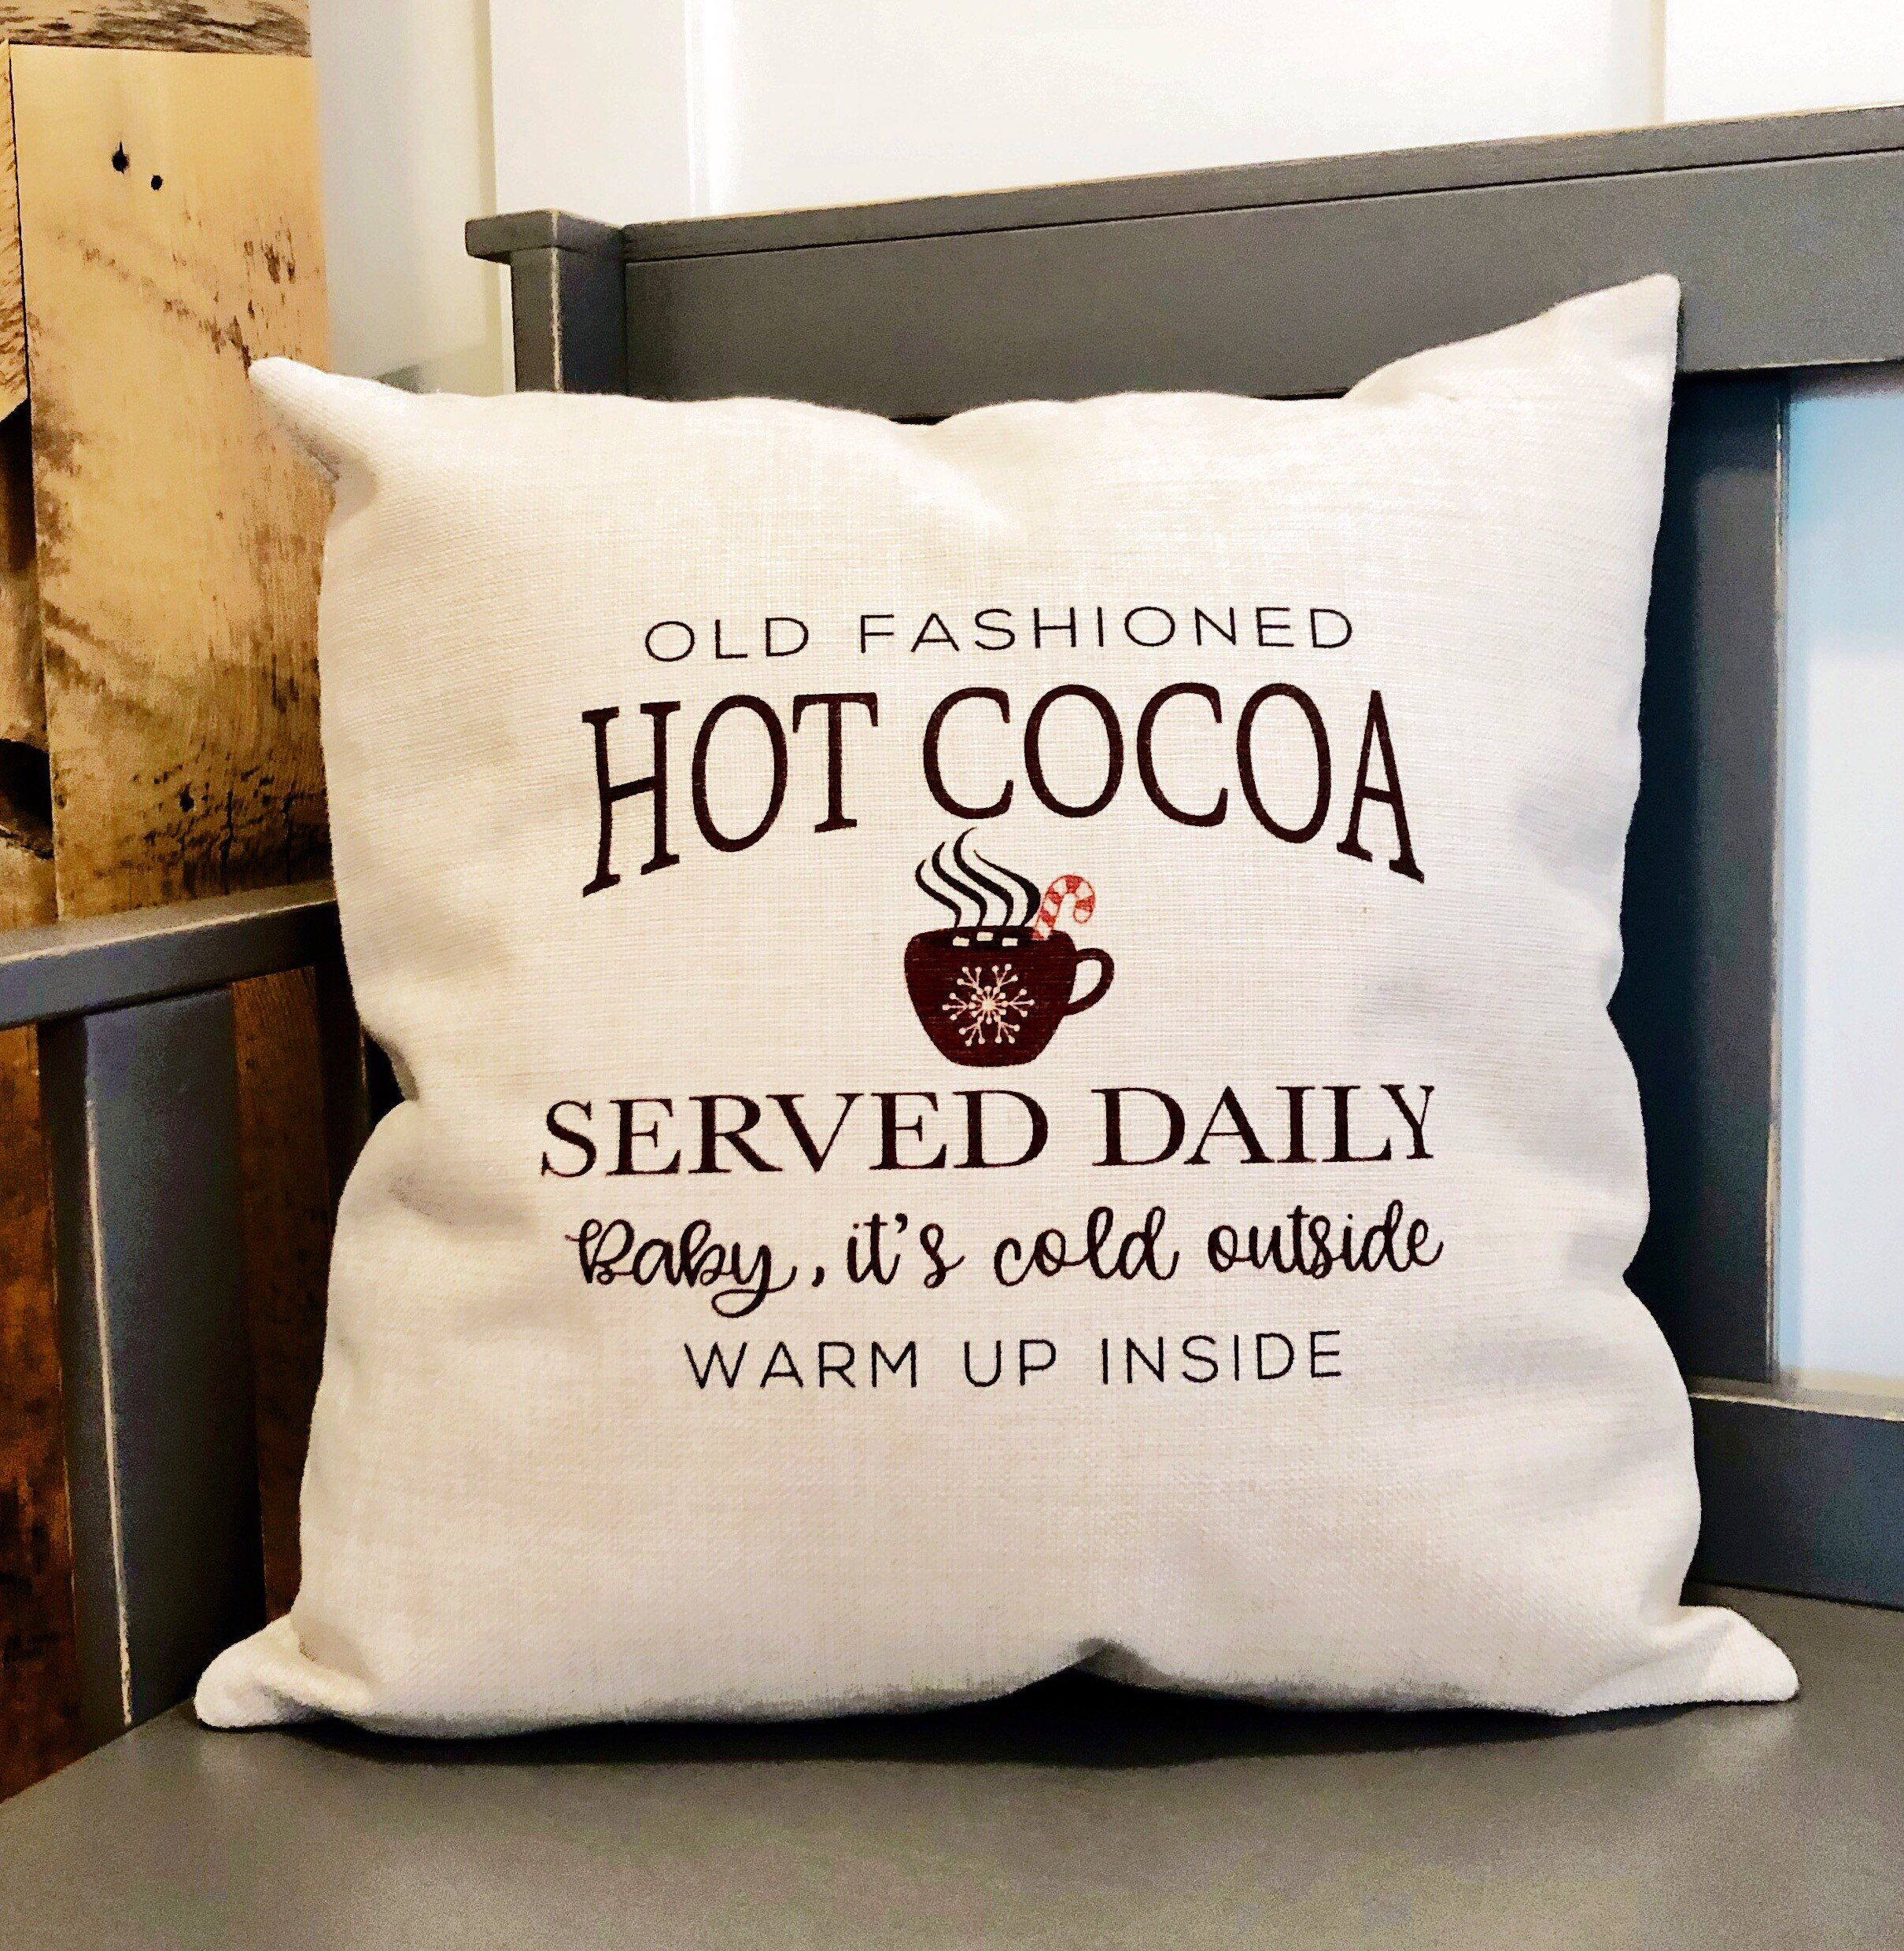 Hot Cocoa Served Daily Pillow Cover Winter Decor Christmas Etsy Christmas Pillow Covers Christmas Pillow Winter Throw Pillows